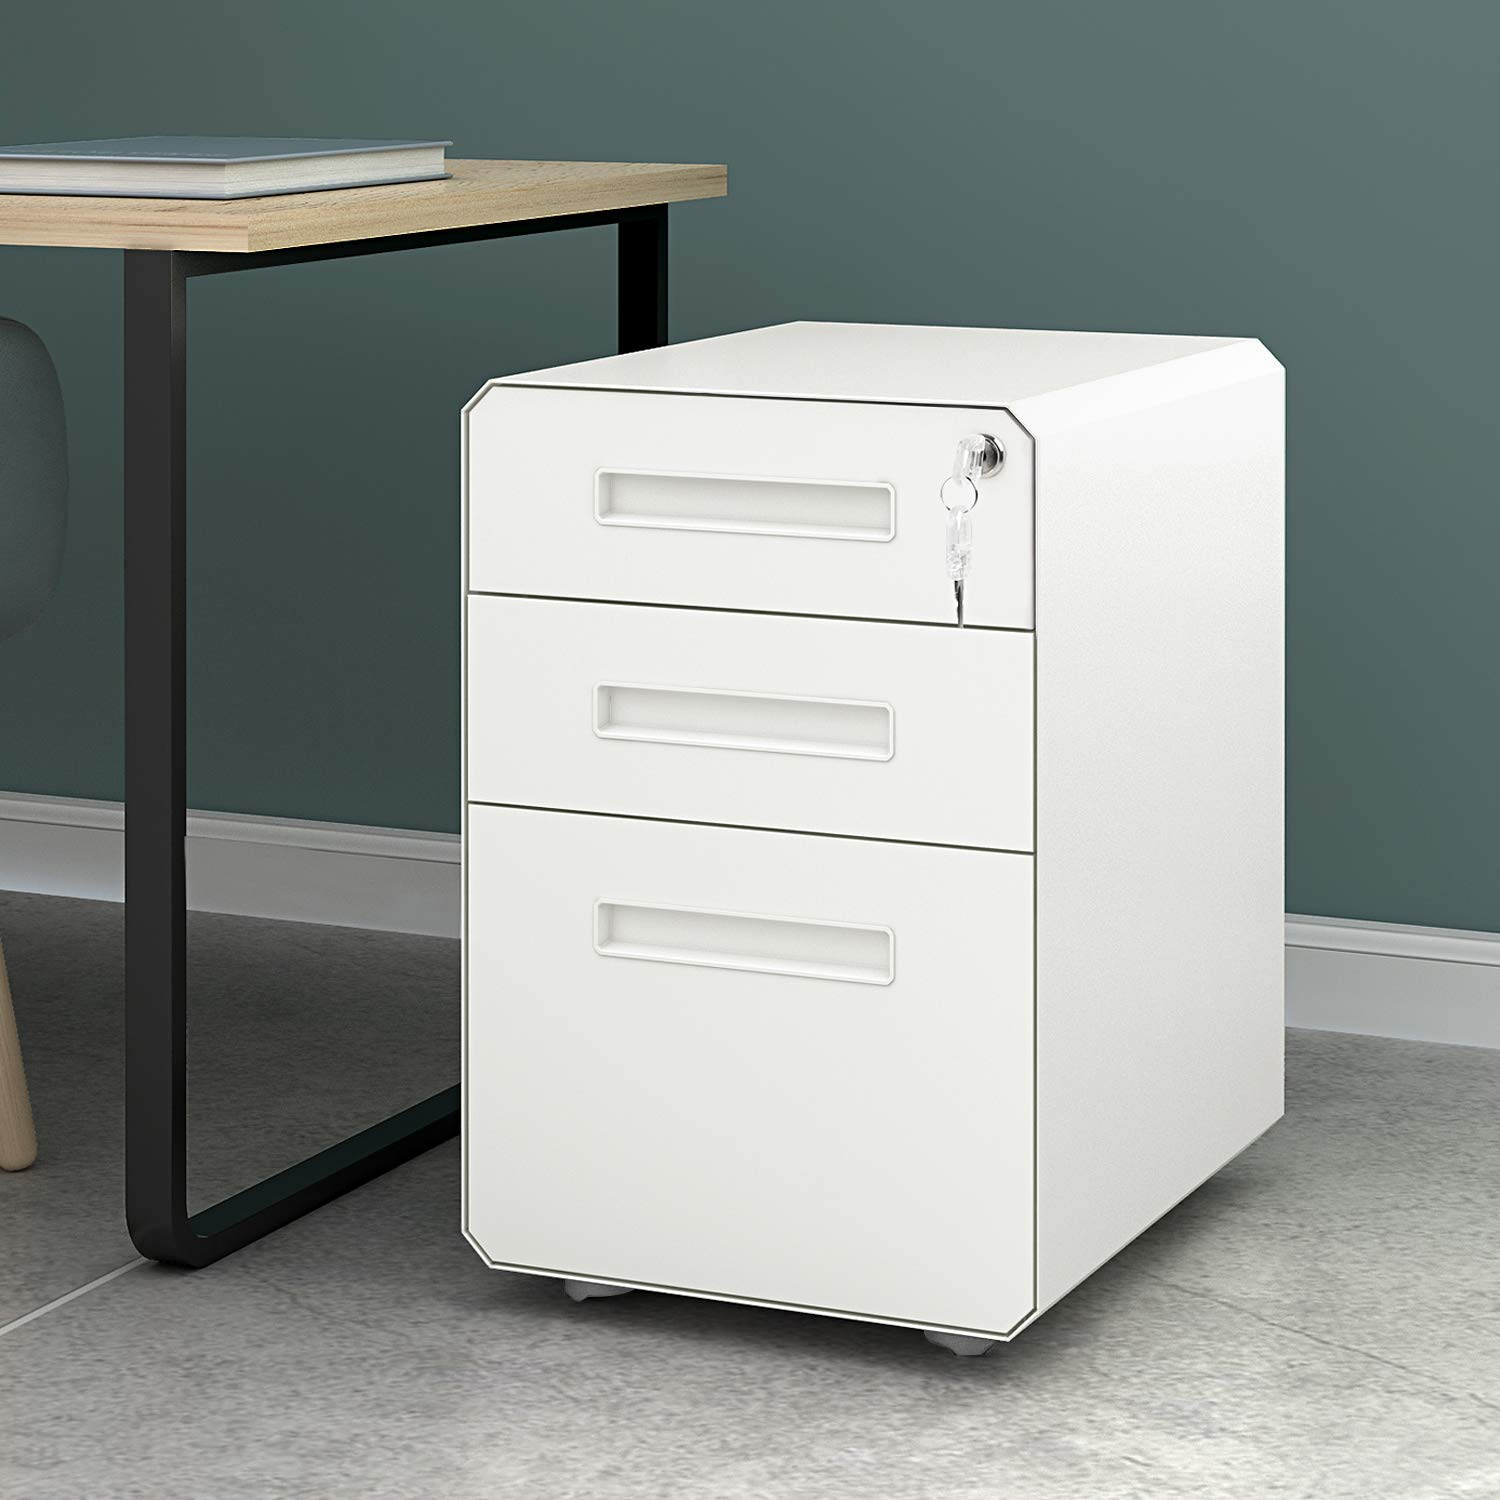 M&W 3 Drawer Mobile File Cabinet, Metal Locking Letter Filing Cabinet by M/W M & W (Image #2)